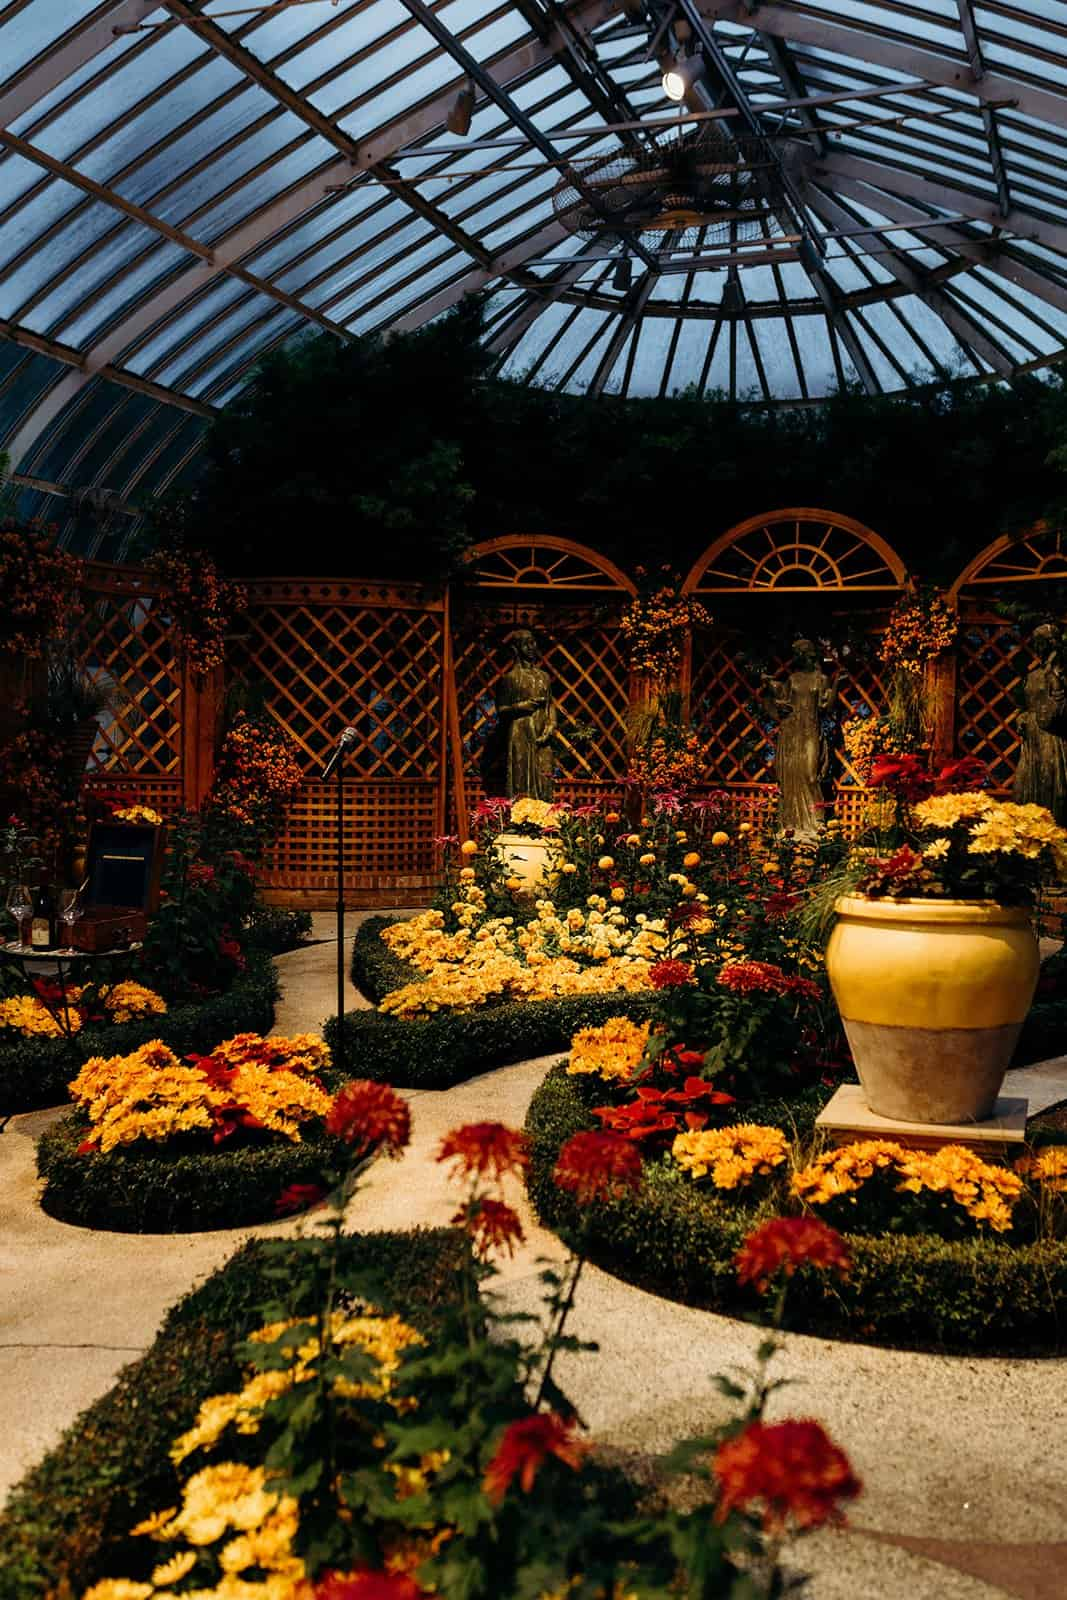 greenhouse with flowers and plants